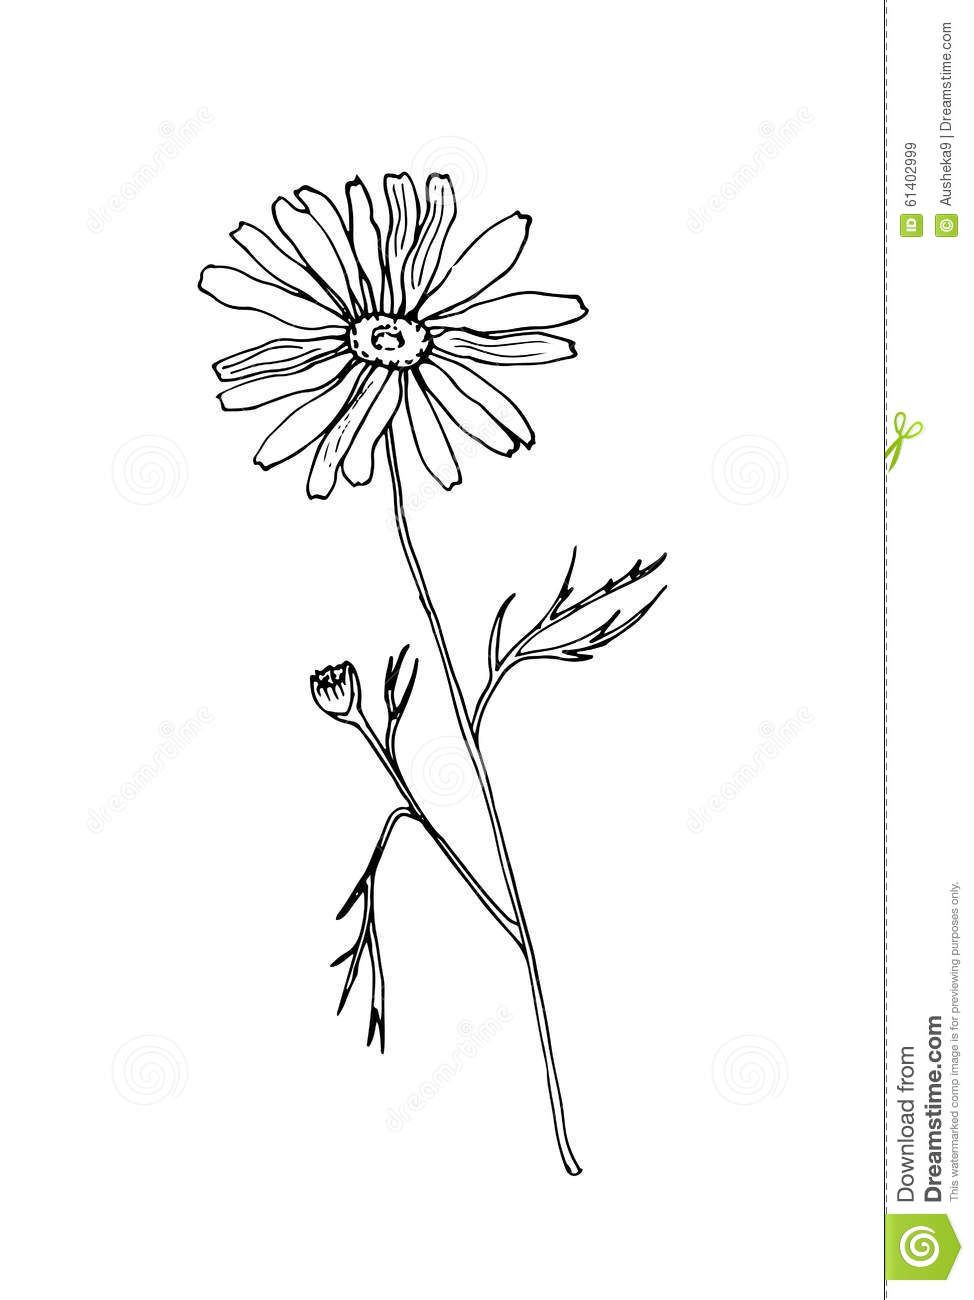 Chamomile clipart b&w image Sketch Chamomile Illustration - Download From Over 49 Million High ... image